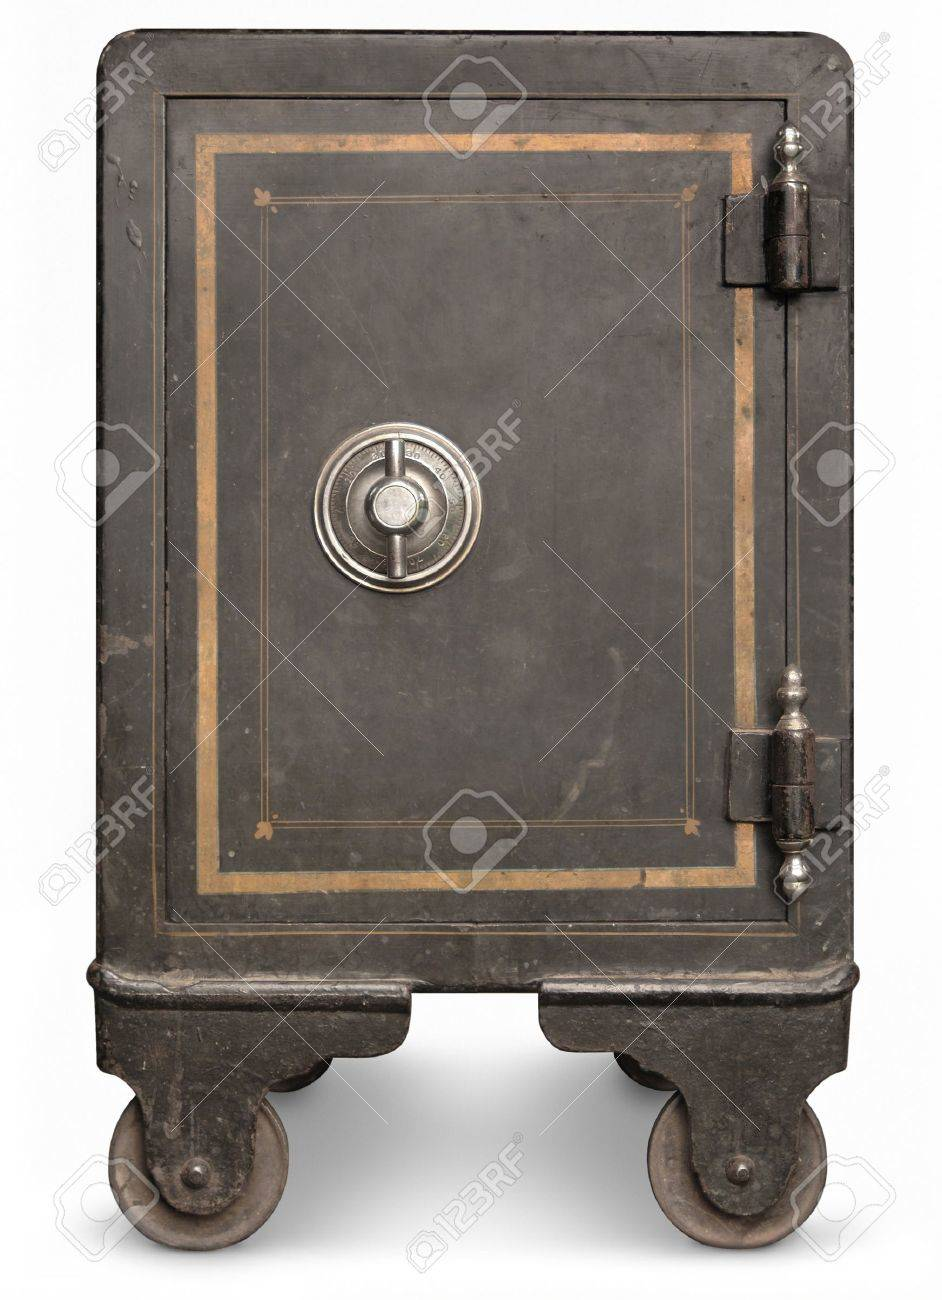 Antique iron safe isolated on white background Stock Photo - 7055554